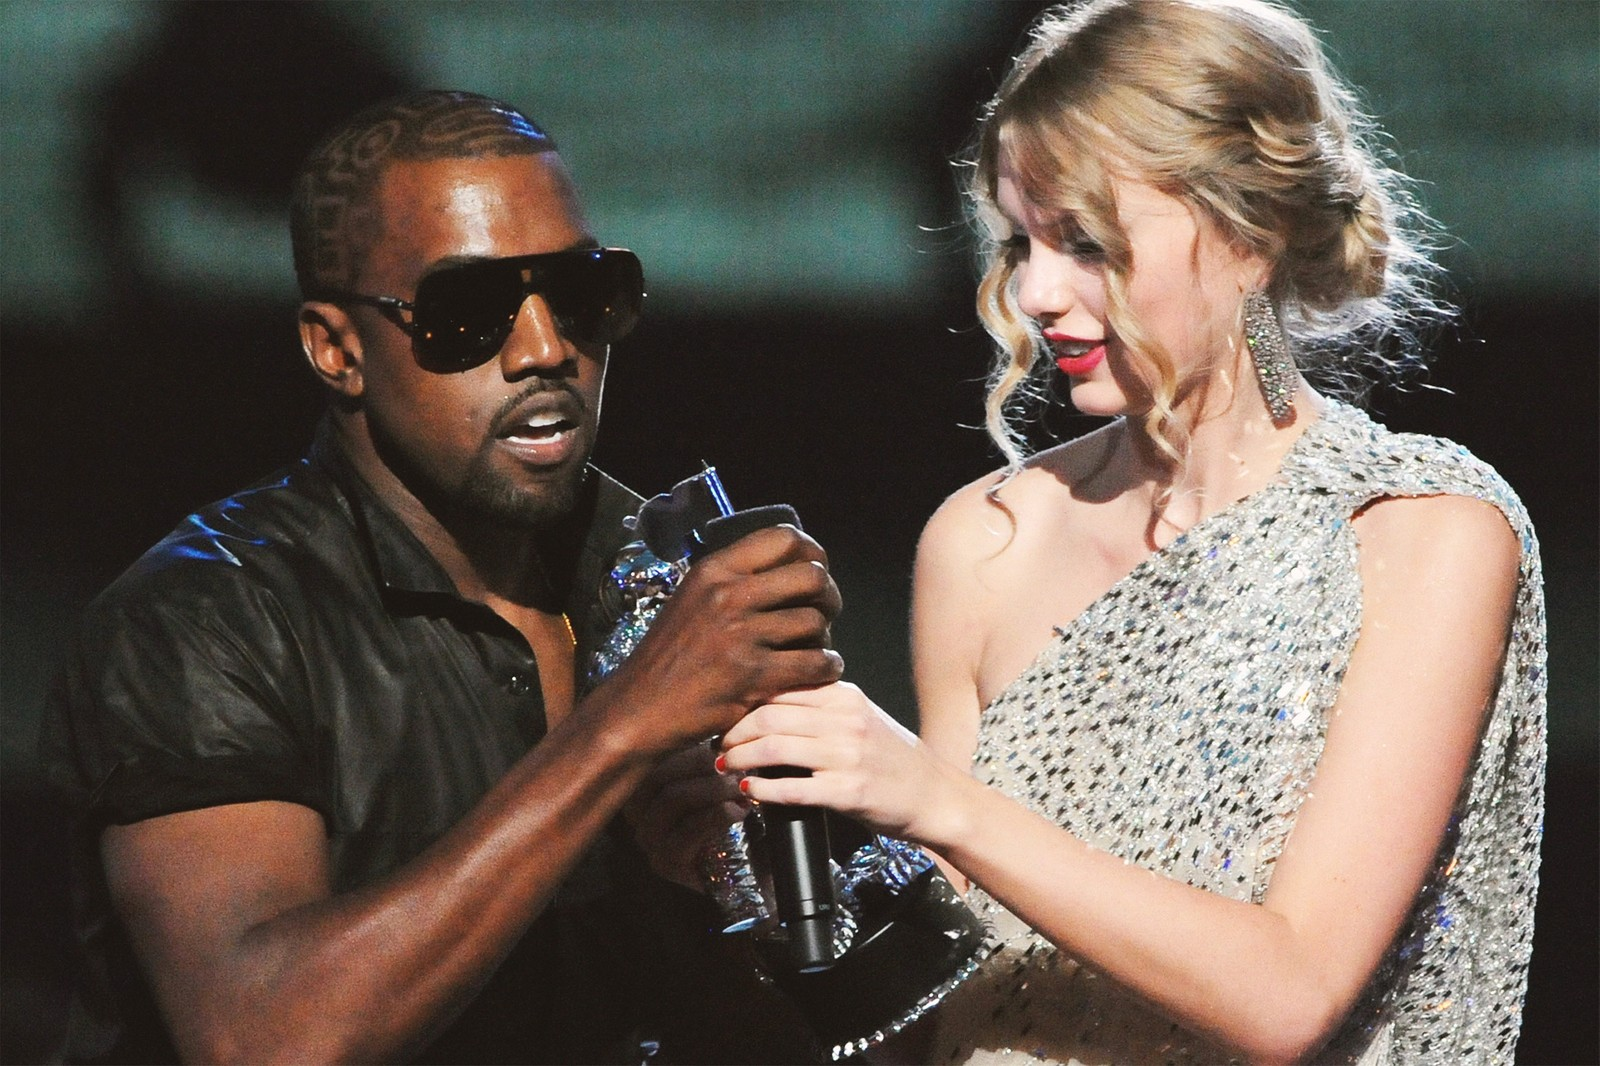 Taylor Swift Calls Out Donald Trump on Twitter Ineffective Leadership USPS Impeach Impeachment Kanye West Republican Democrat Birthday Party 45 President HYPEBEAST Music News Pop Star Bon Iver Country Election Vote Voter Suppression BLM BlackLivesMatter Black Lives Matter